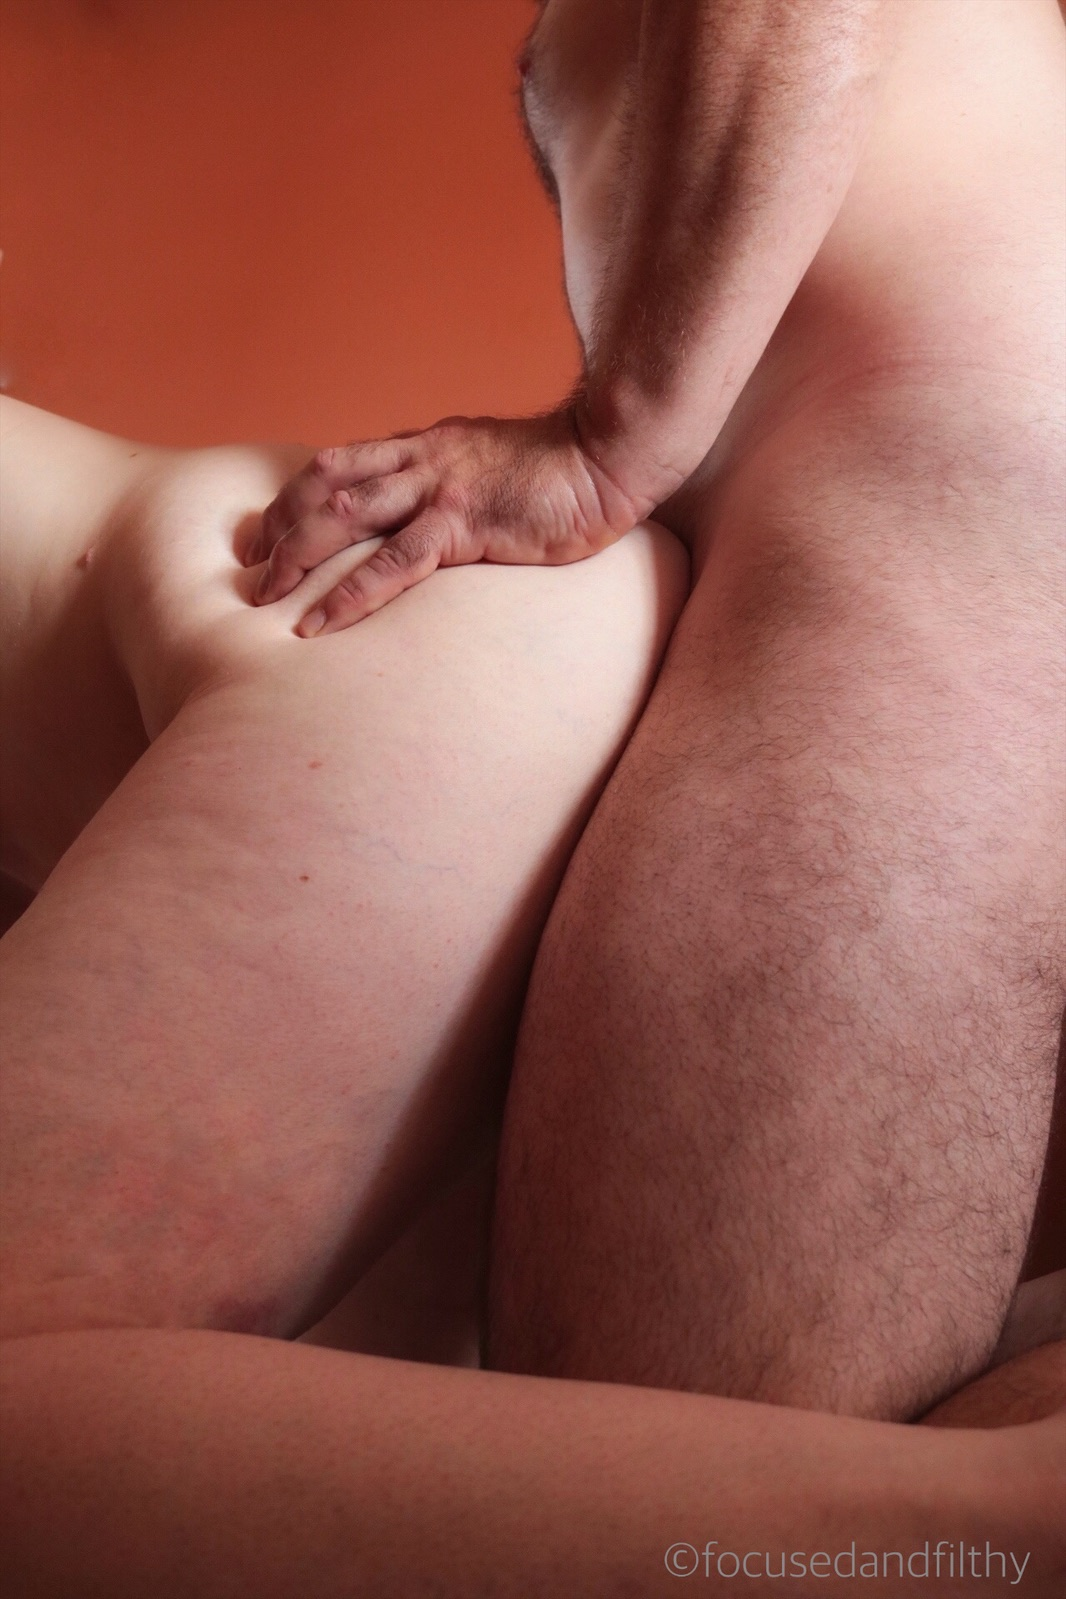 Colour photograph of a naked Male and female couple from the side during doggy style sex. Focusing on his hand gripping onto the soft flesh of her buttock.